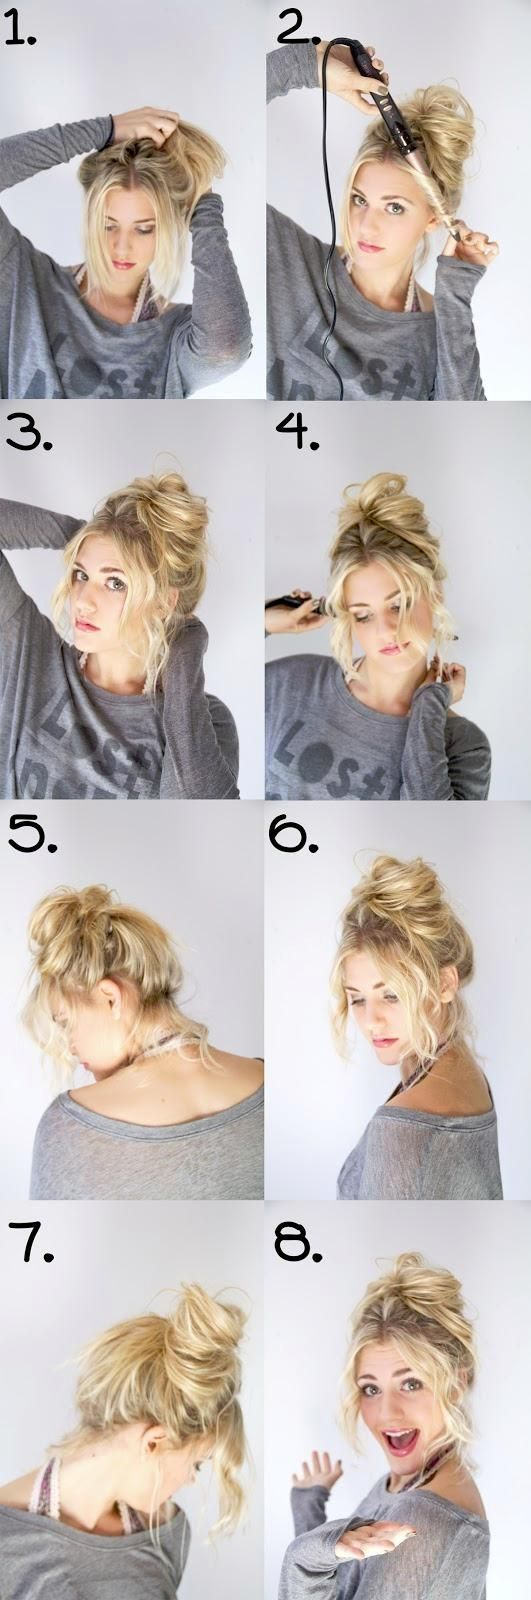 Messy Bun Step By Step Pictures, Photos, and Images for ...